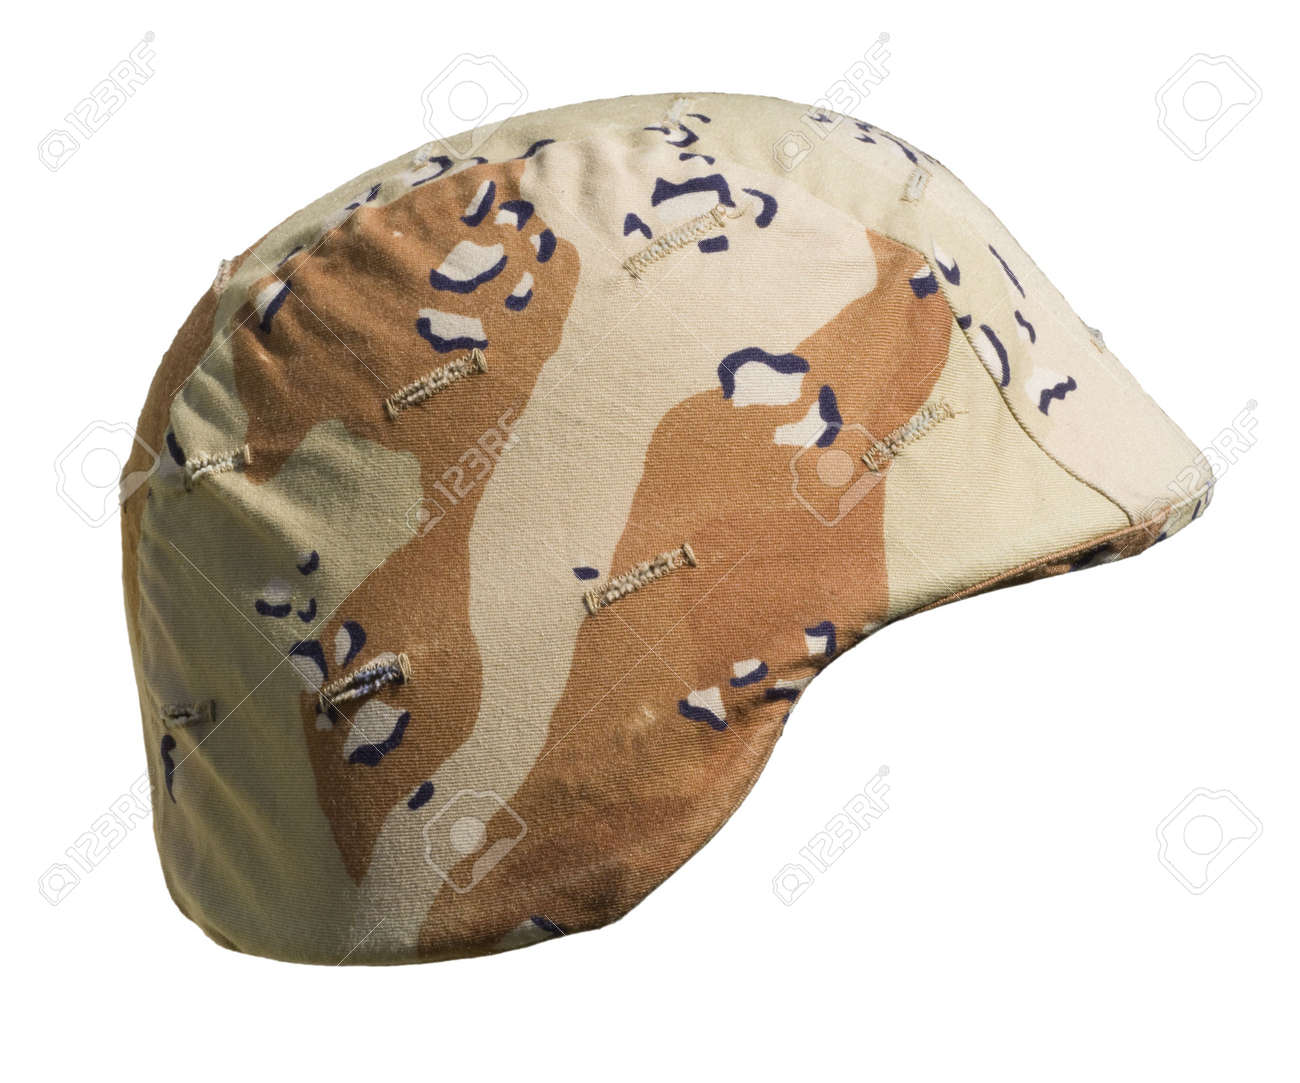 A US PASGT  helmet with a Desert Battle Dress Uniform (chocolate-chip) camouflage cover from Operation Desert Storm, 1990&ETH,91, commonly referred to as the Gulf War. Stock Photo - 6999521